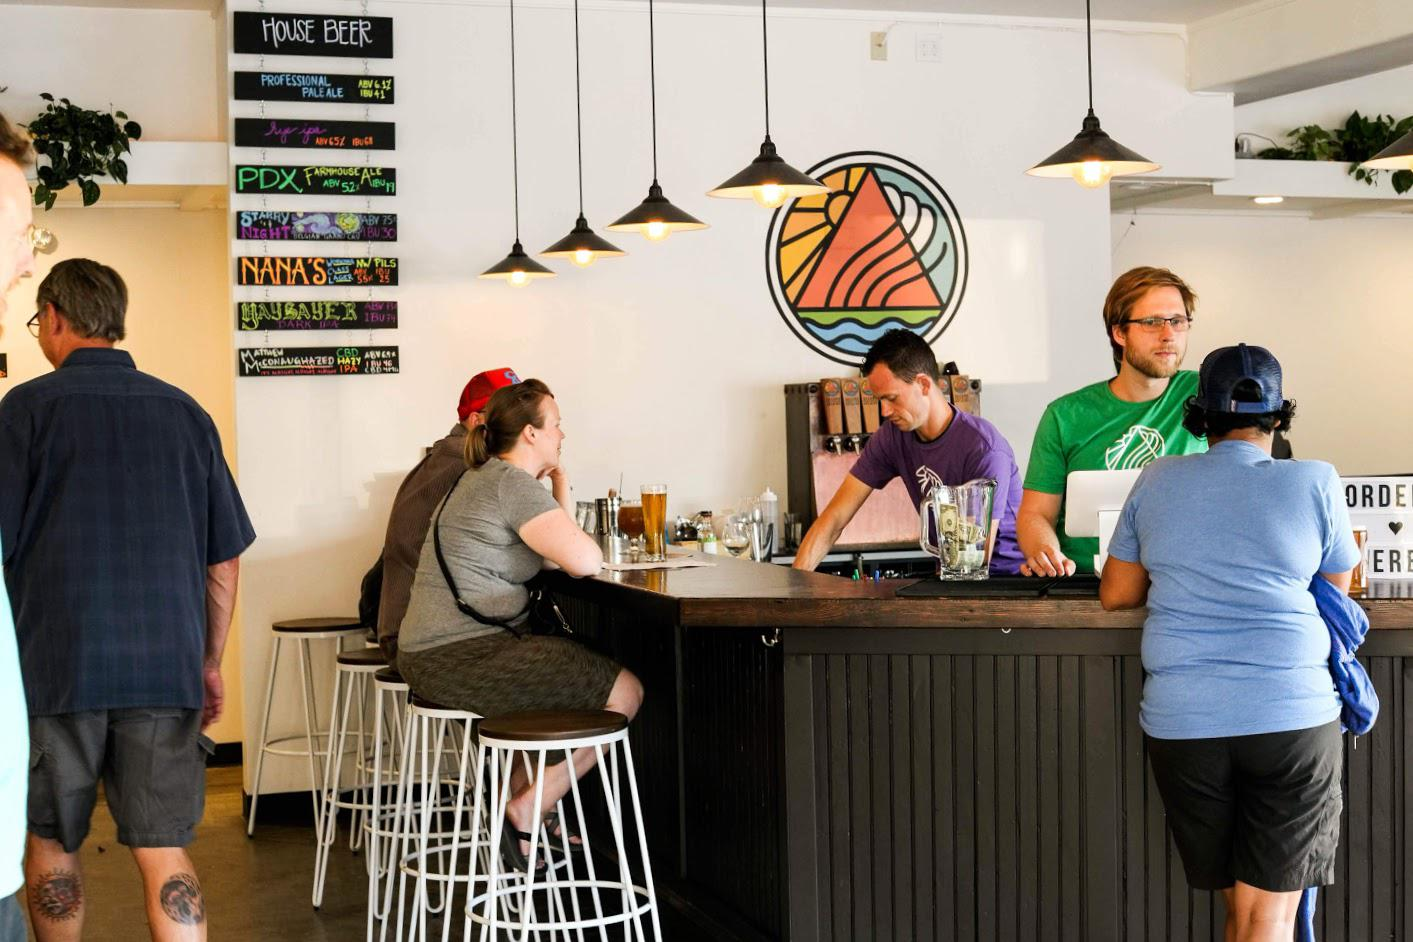 Second Profession Brewing image 0